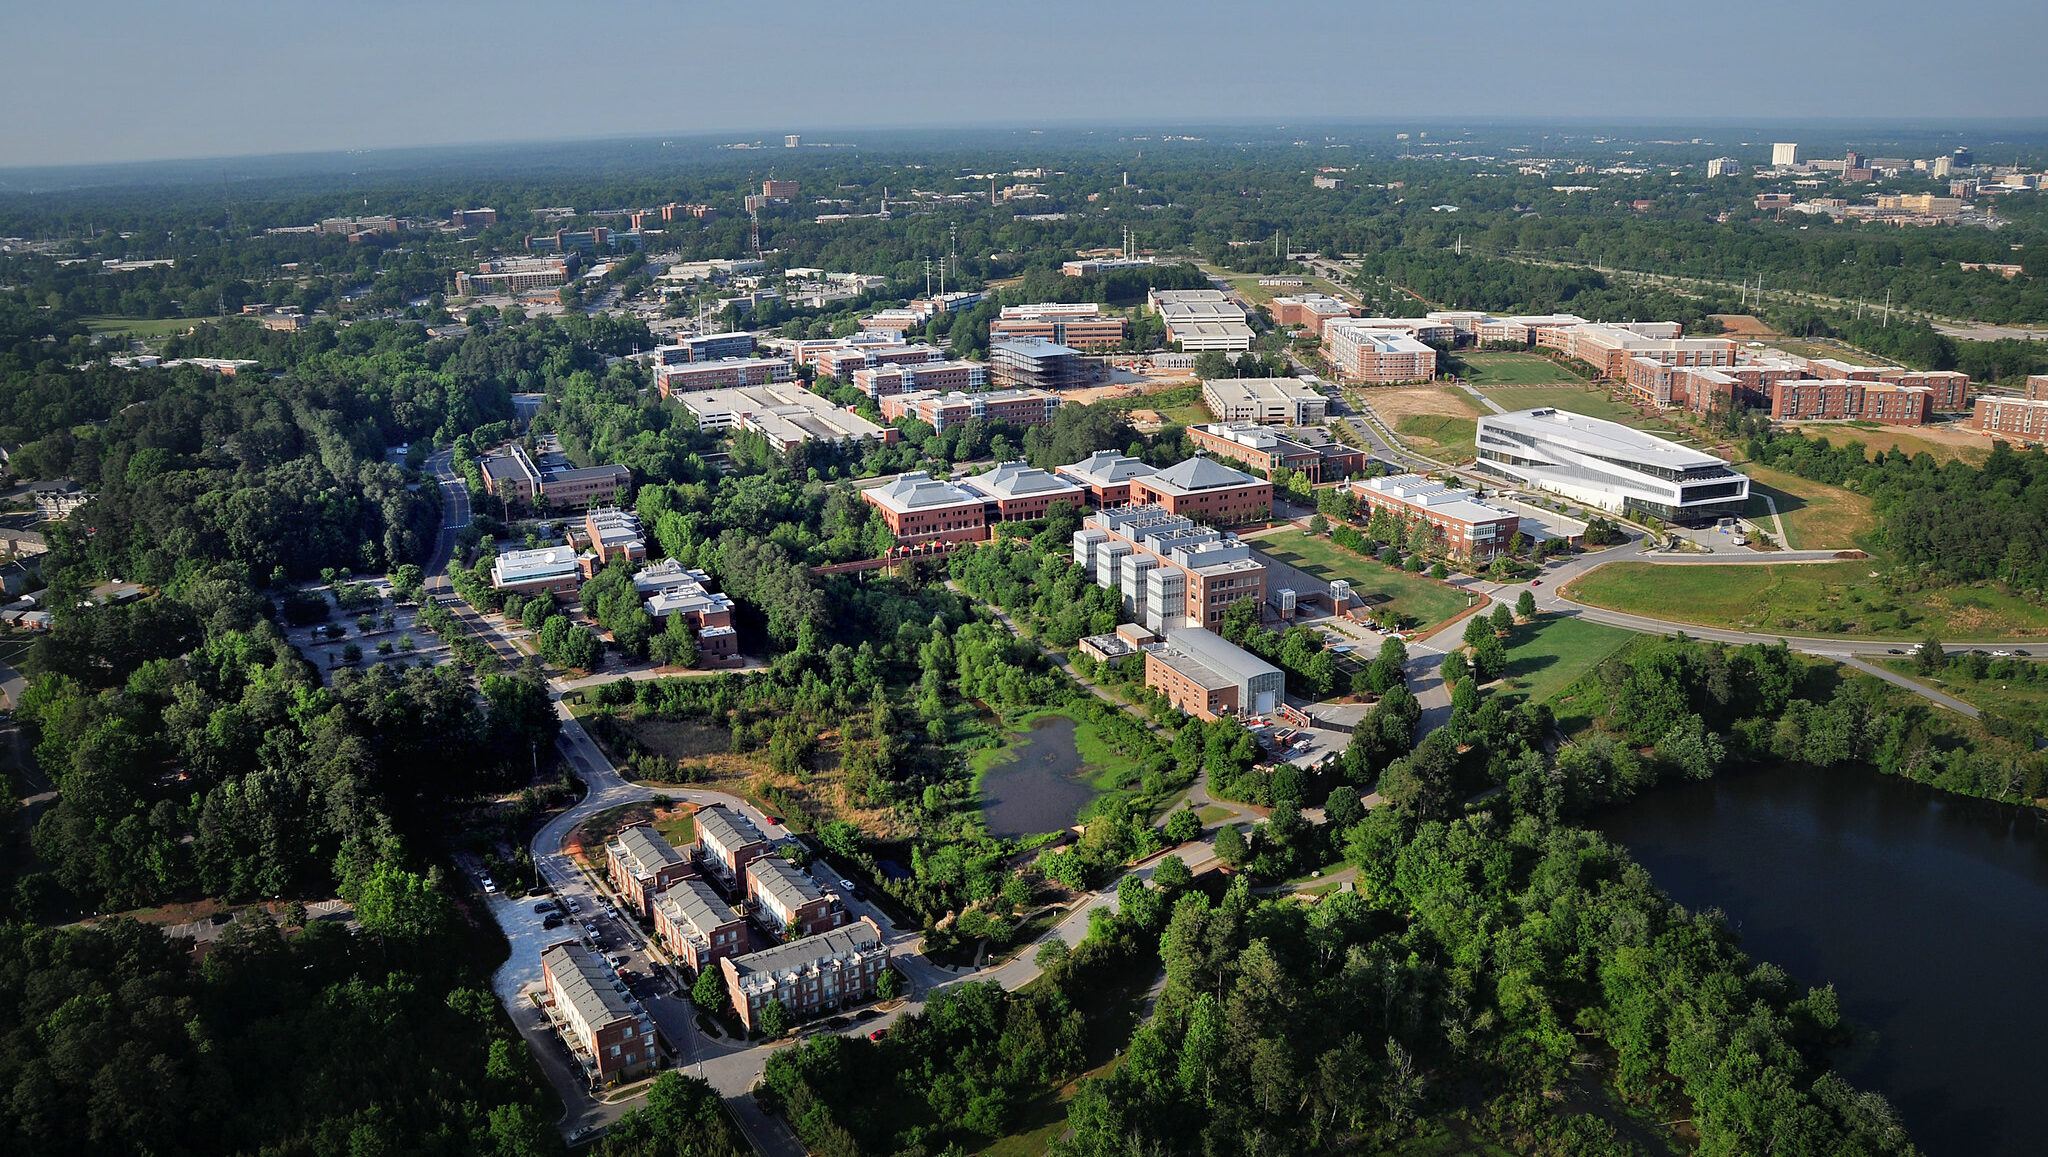 Aerial view of NC State campus